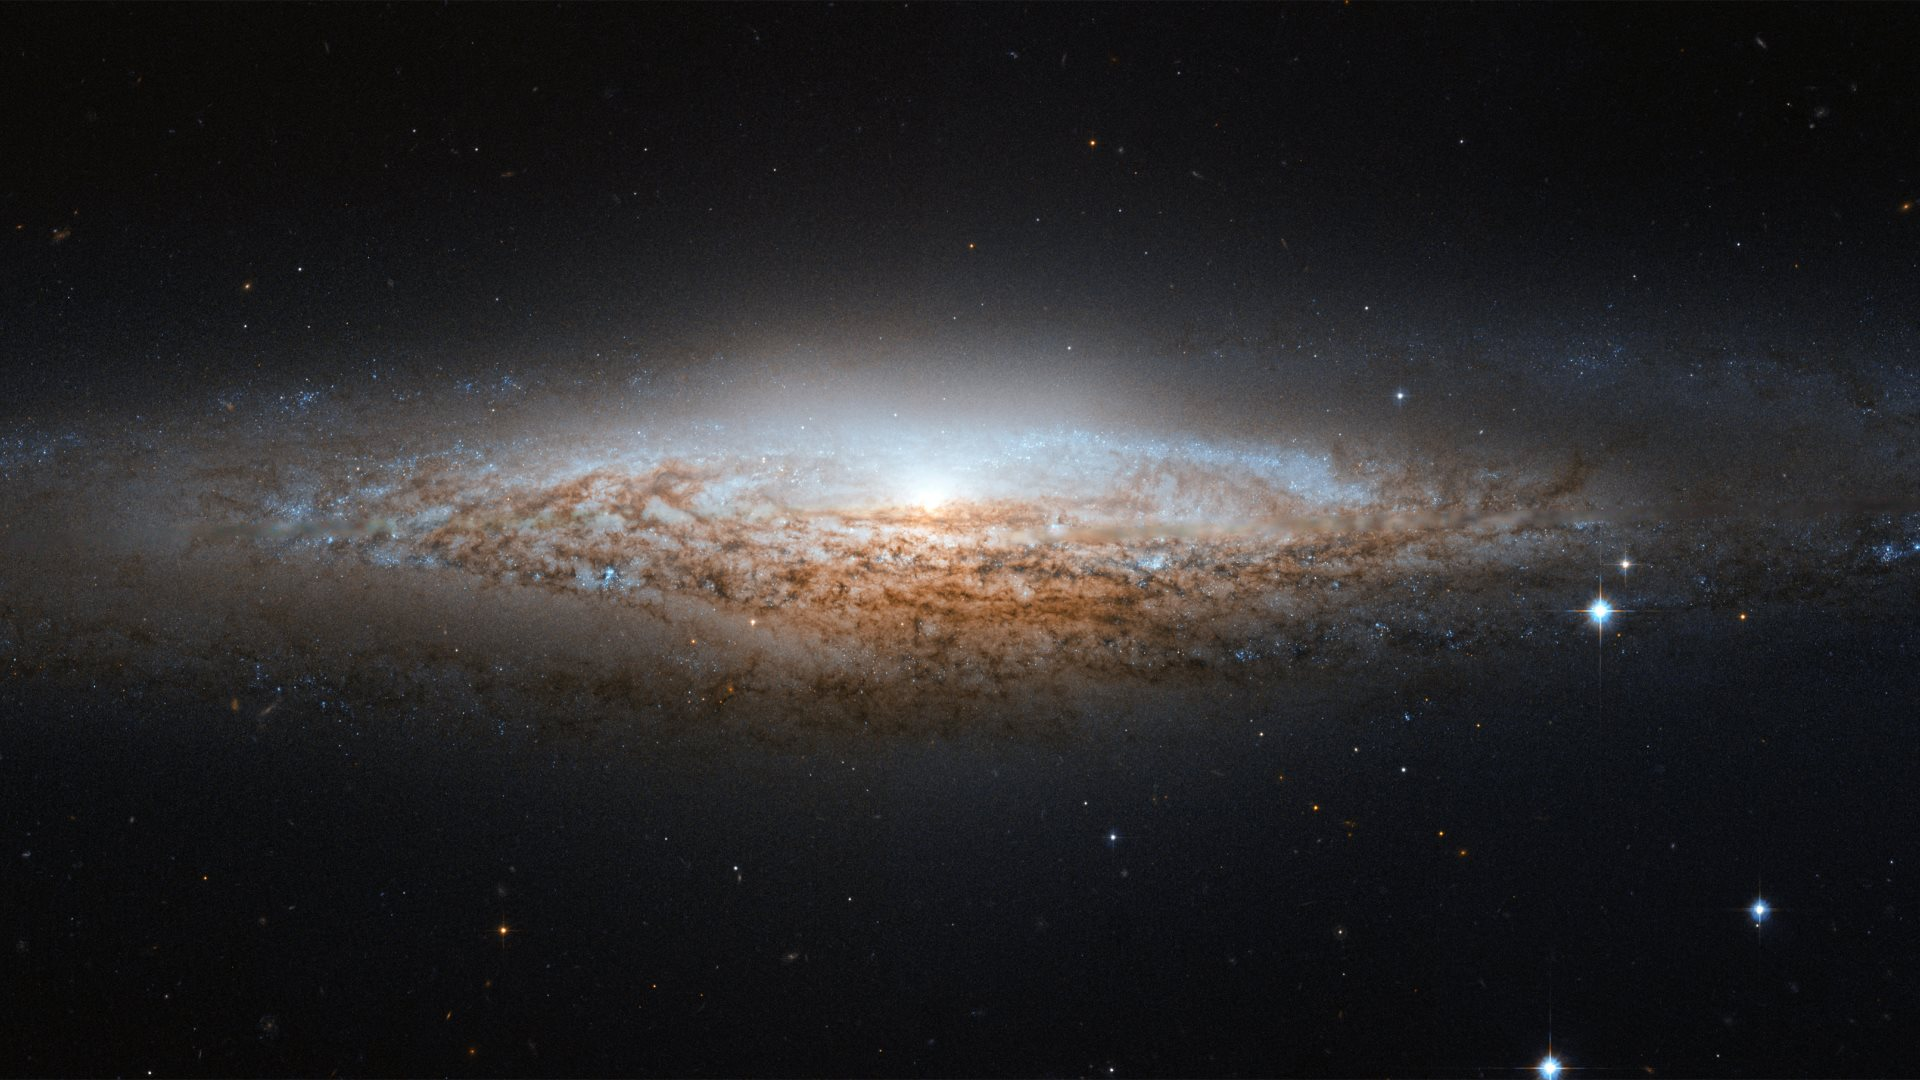 hubble telescope images of space - photo #12